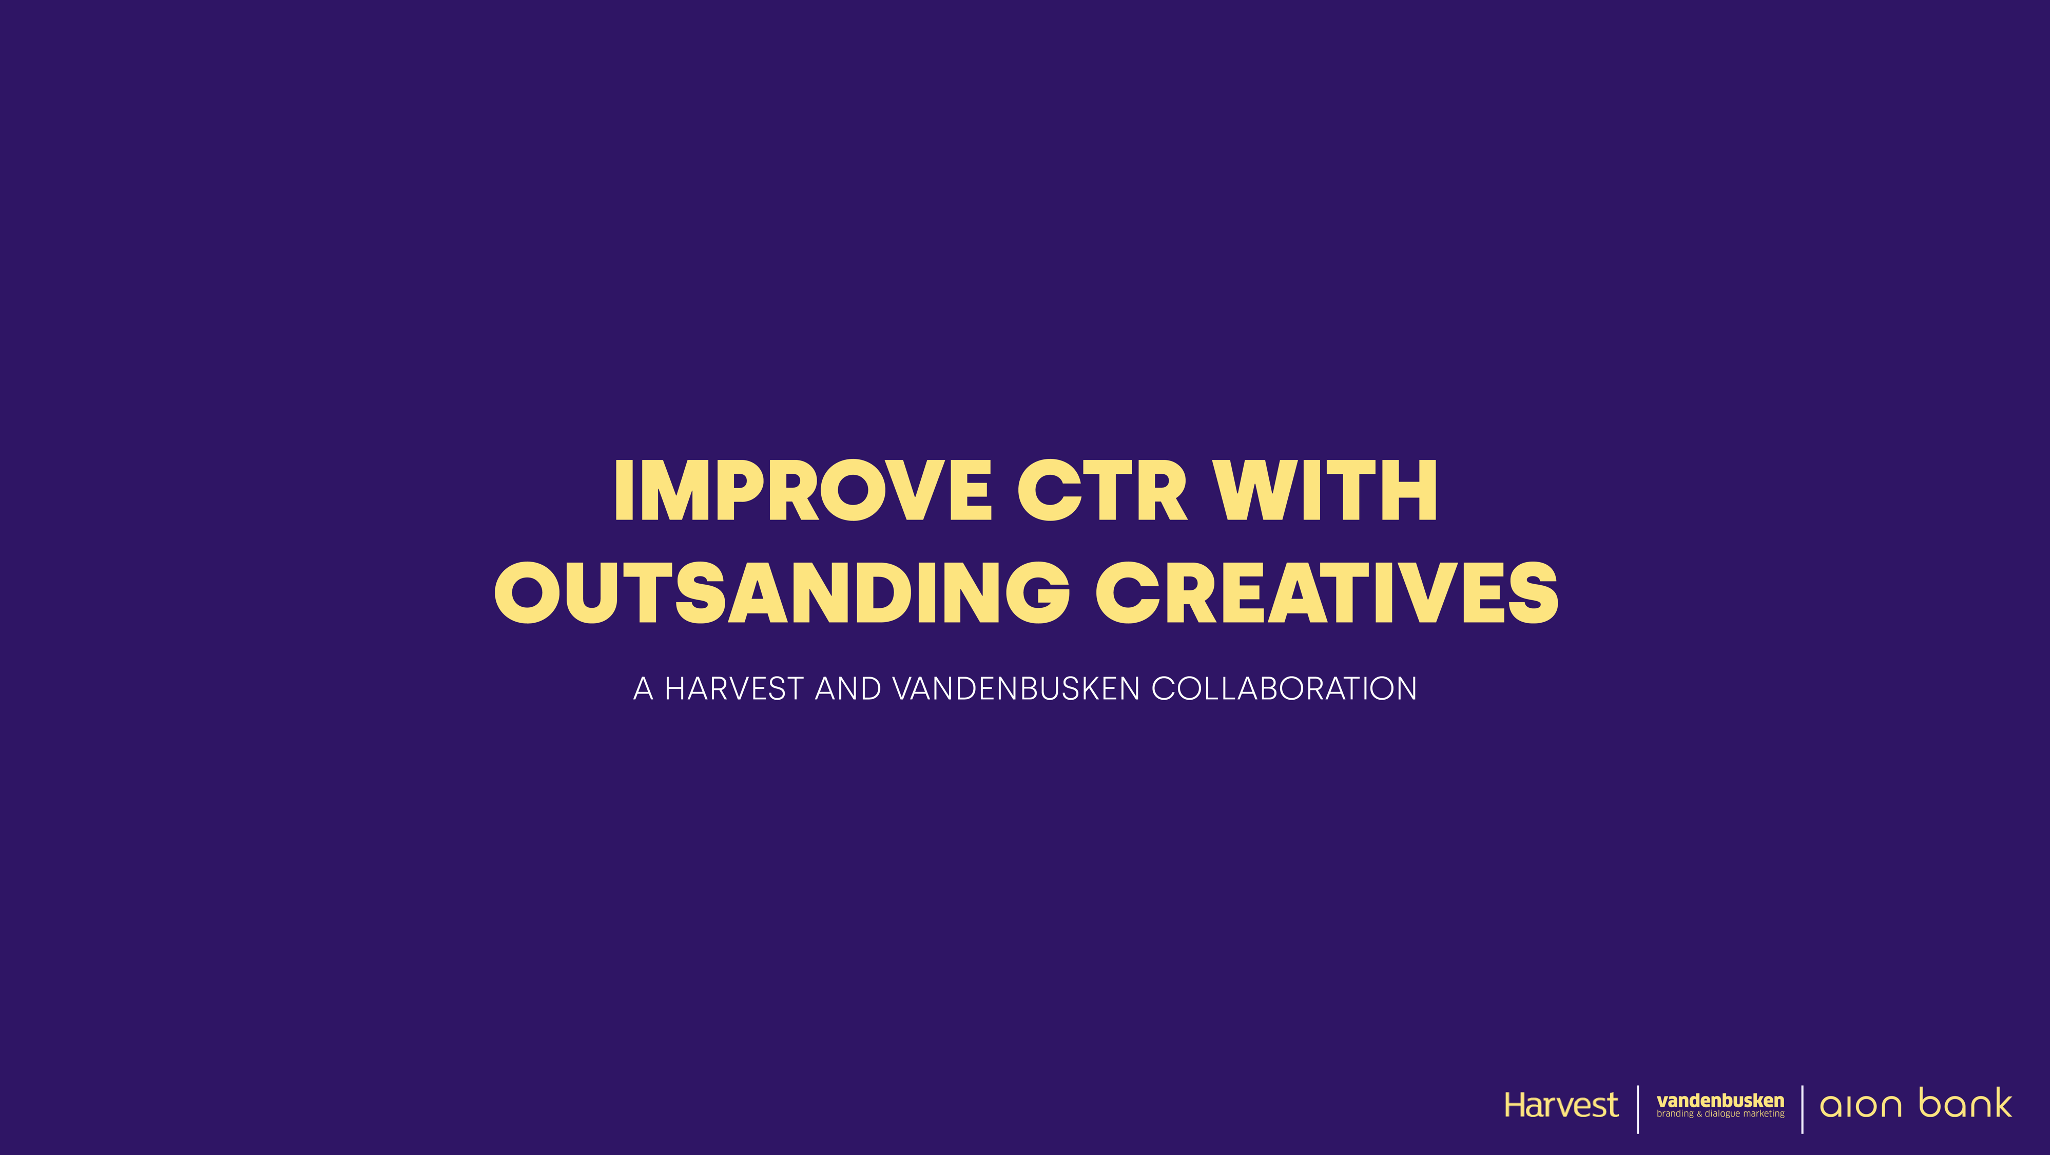 Improve CTR with outsanding creatives (Collaboration with Harvest Digital)